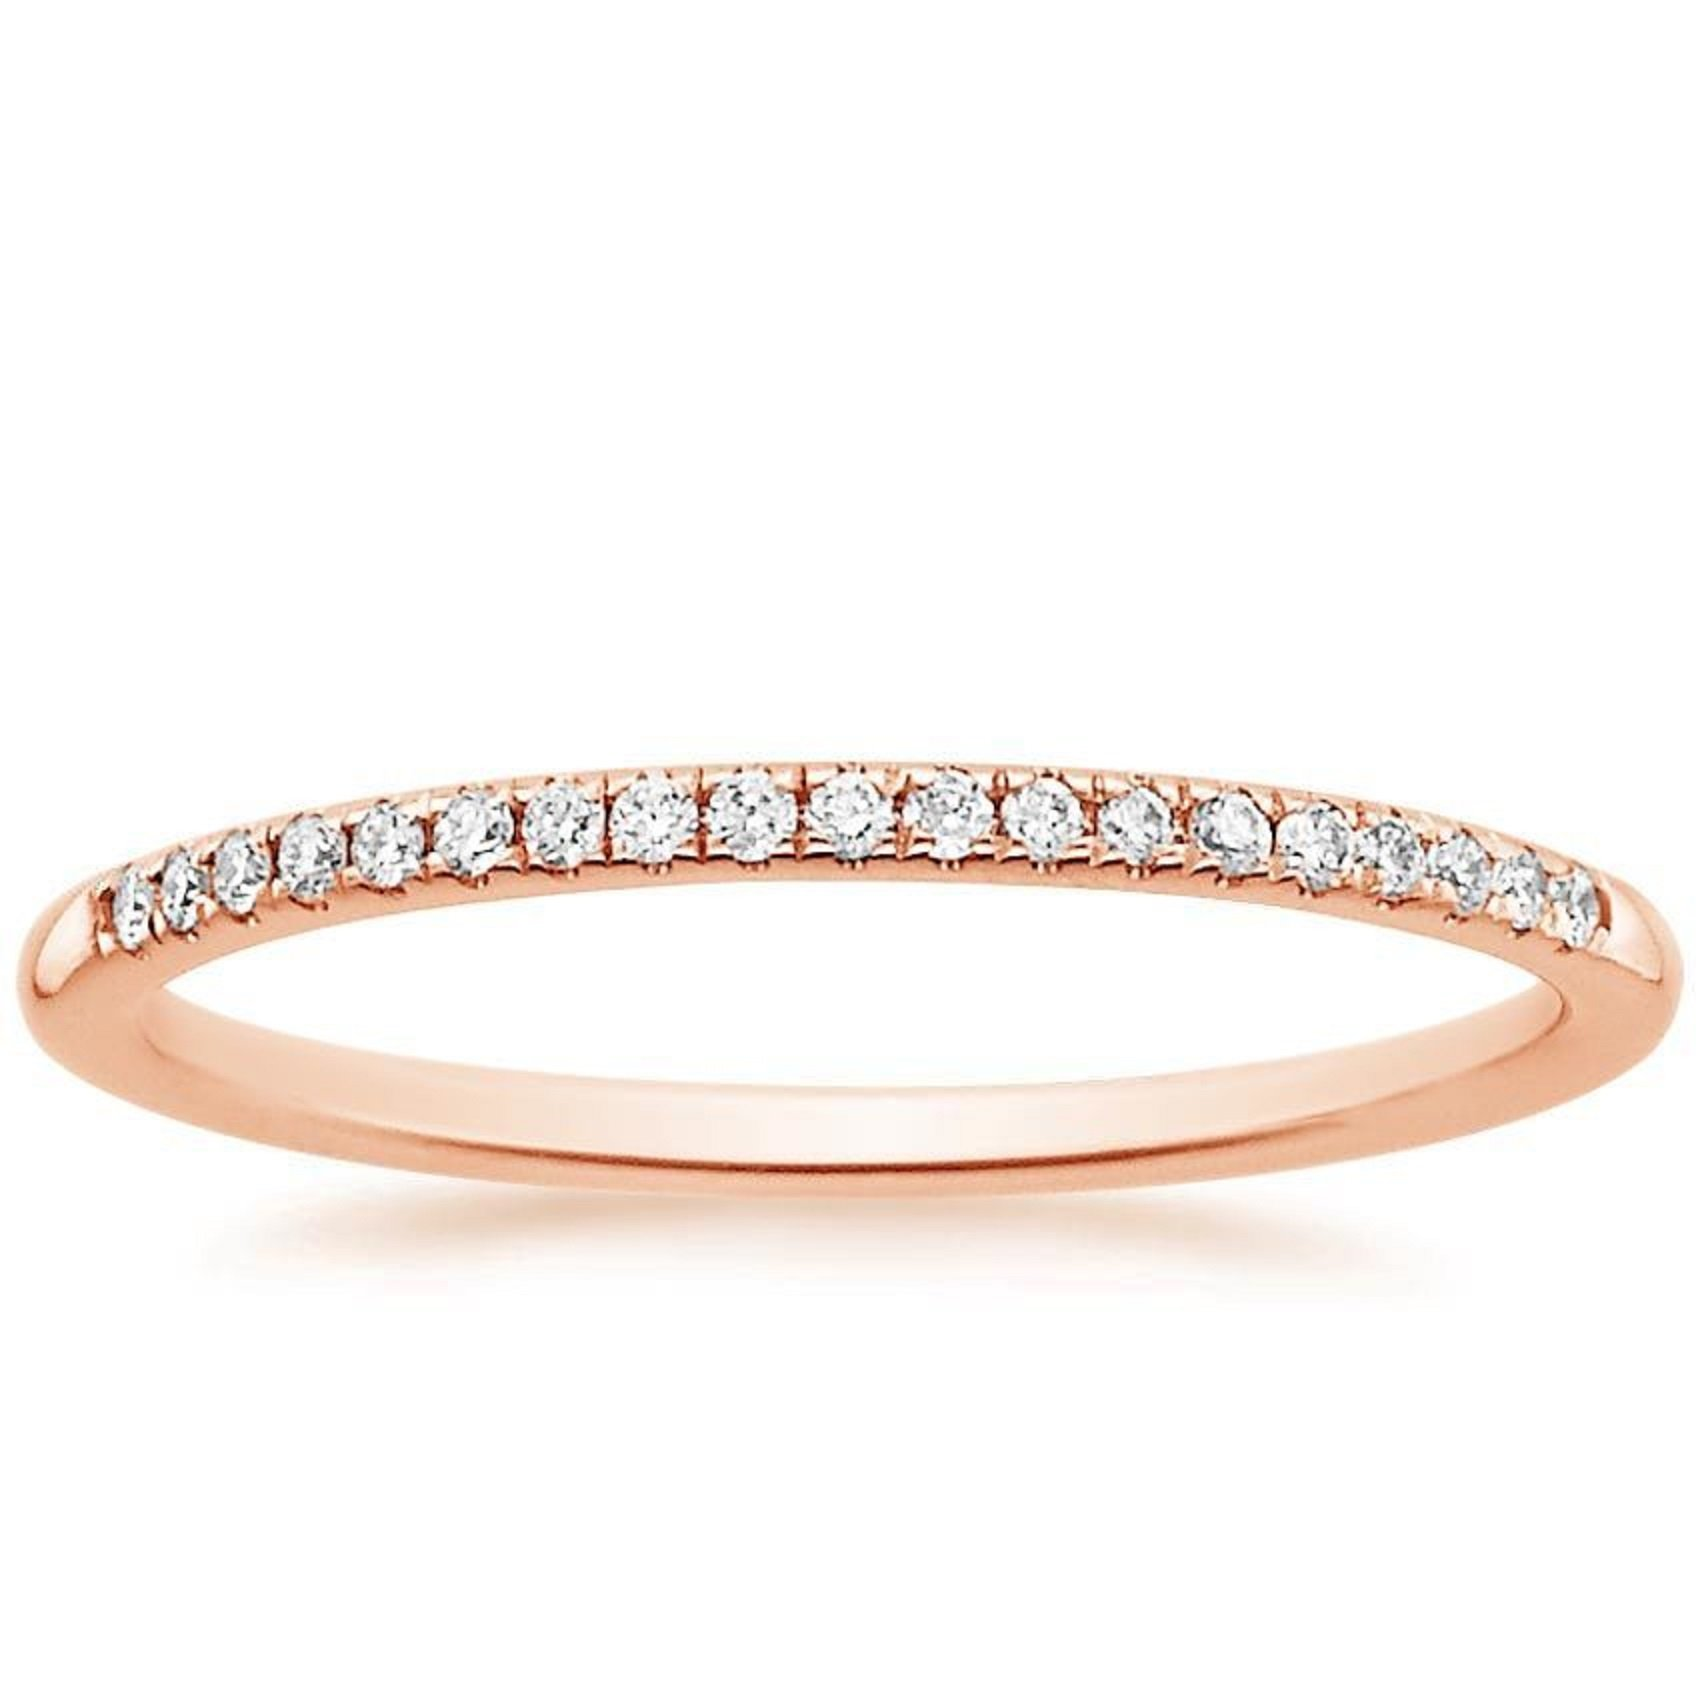 0.85 ct Brilliant Round Cut Wedding Promise Bridal Engagement Band In Solid 14K Rose Gold , Size 5